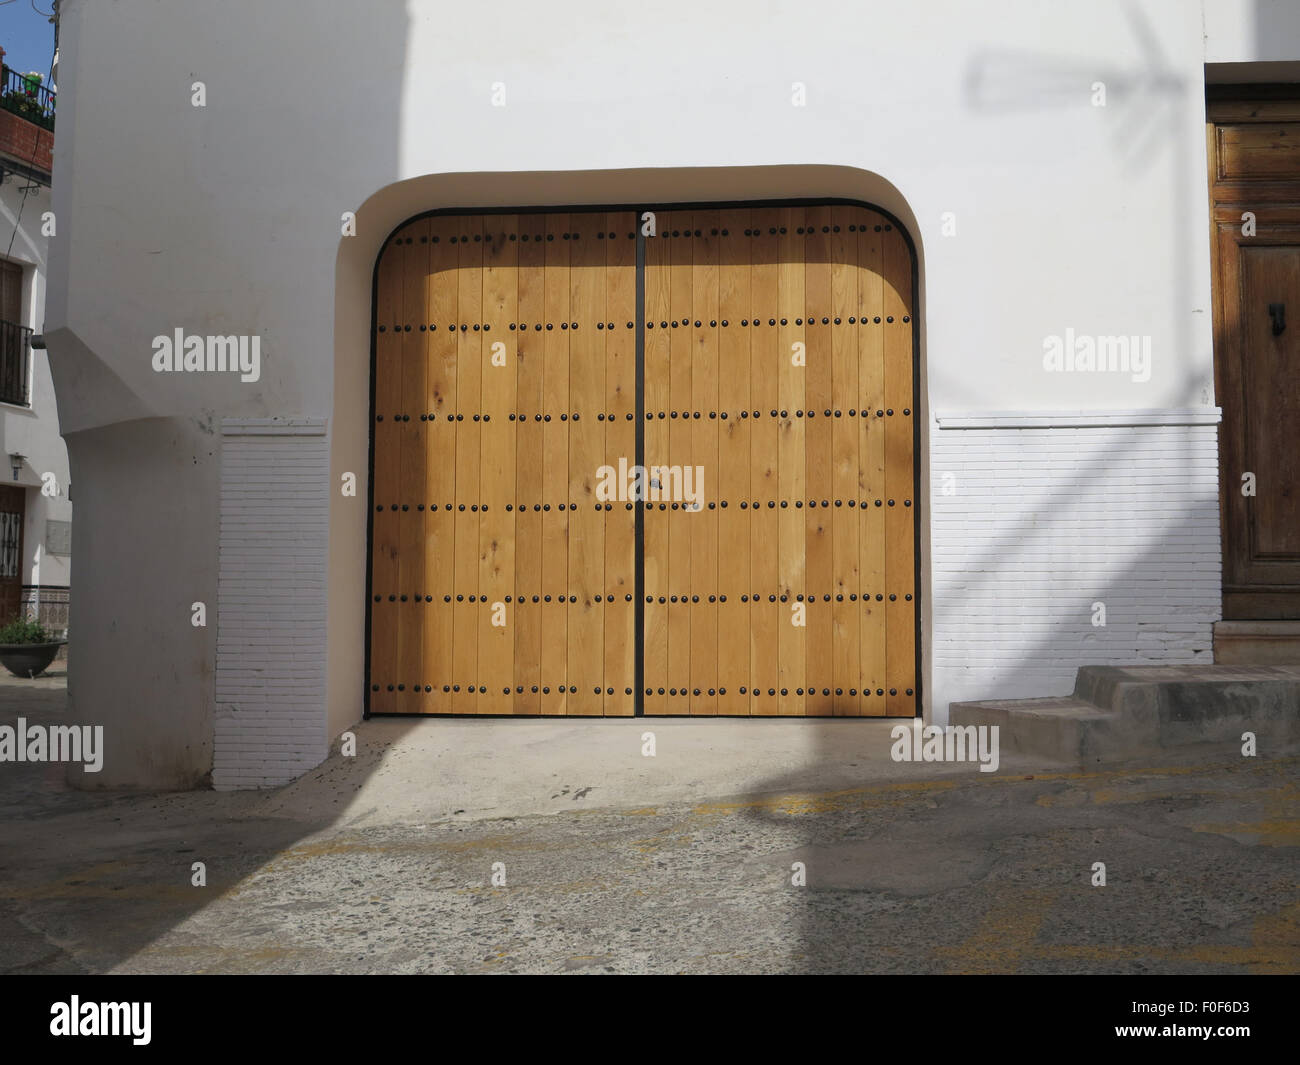 Traditional Andalusian wooden doors with big iron studs - Stock Image & Door With Studs Stock Photos u0026 Door With Studs Stock Images - Alamy